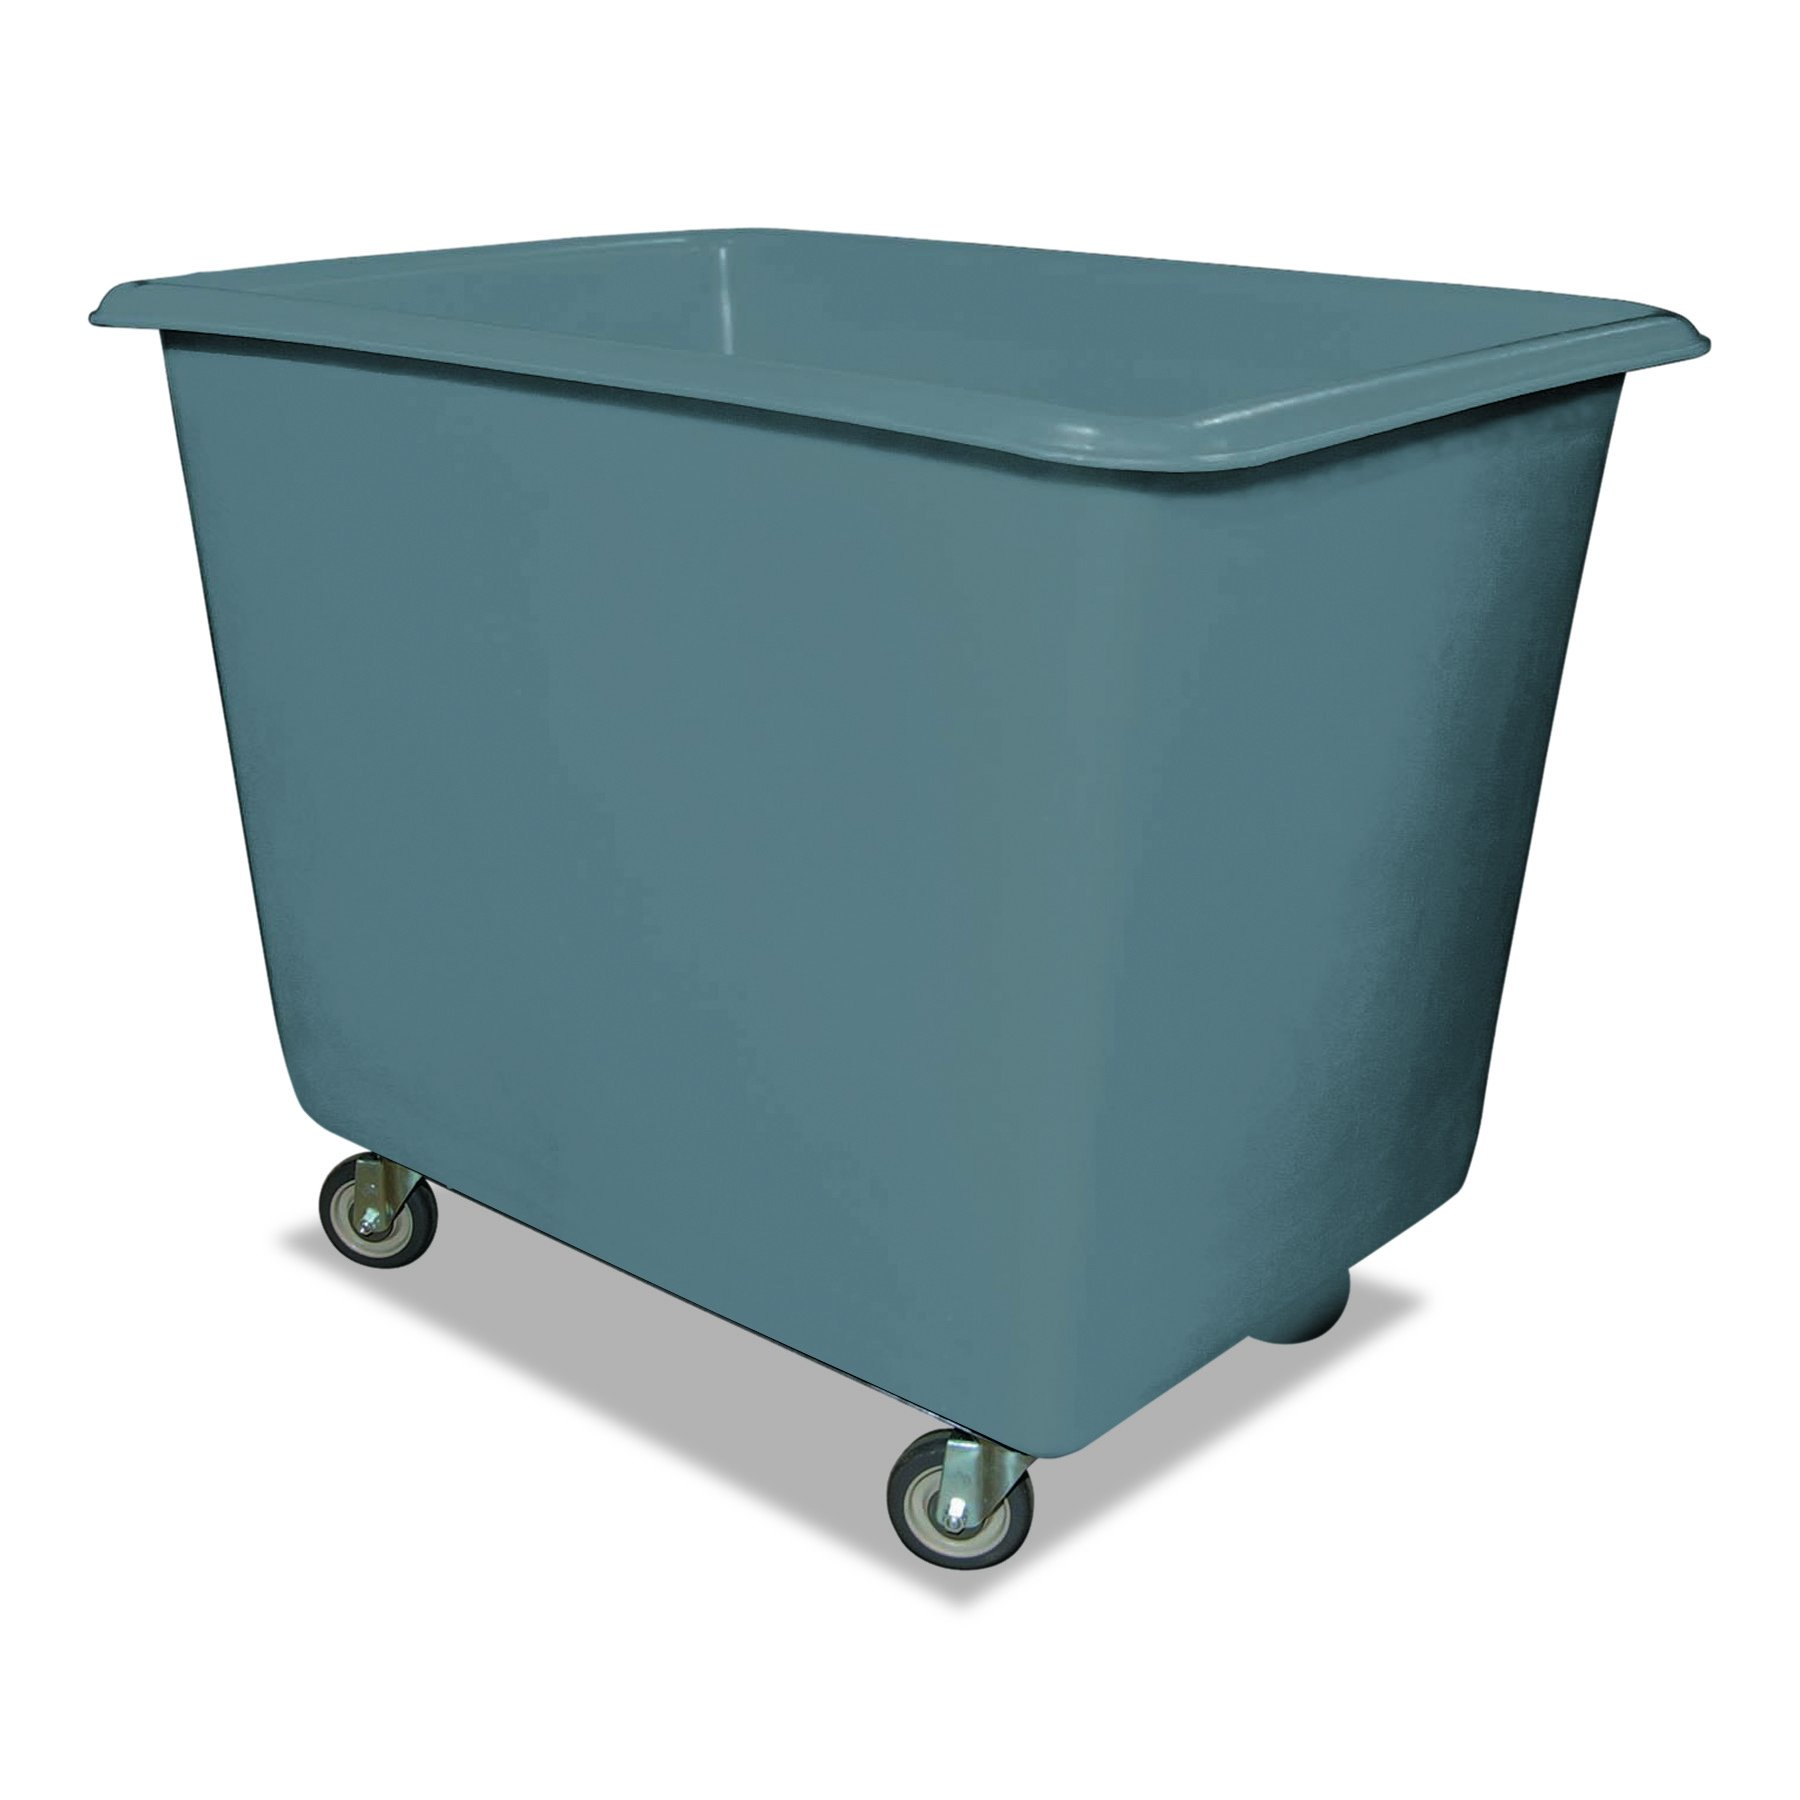 Royal Basket Trucks R8GRXPGA4UN 8 Bushel Poly Truck with Galvanized Steel Base, 26'' x 38'' x 28 1/2'', 800 lb. Cap, Gray